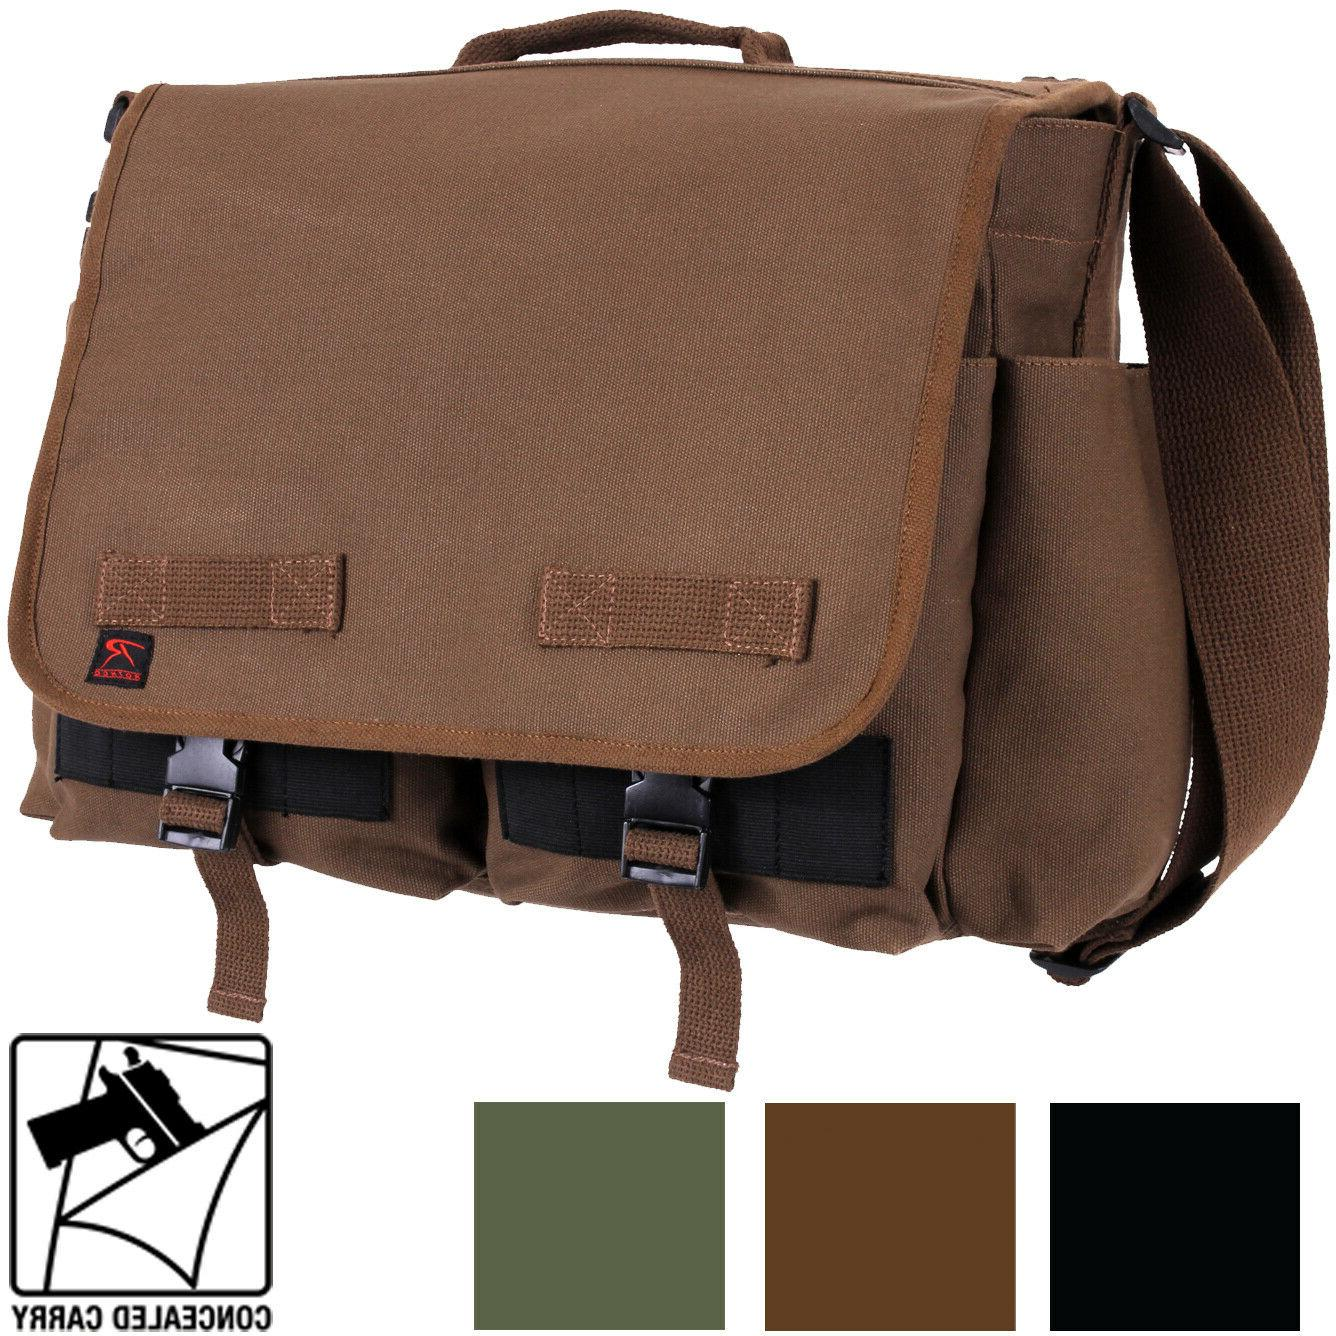 Tactical Concealed Carry Messenger Bag Ccw Edc Discreet